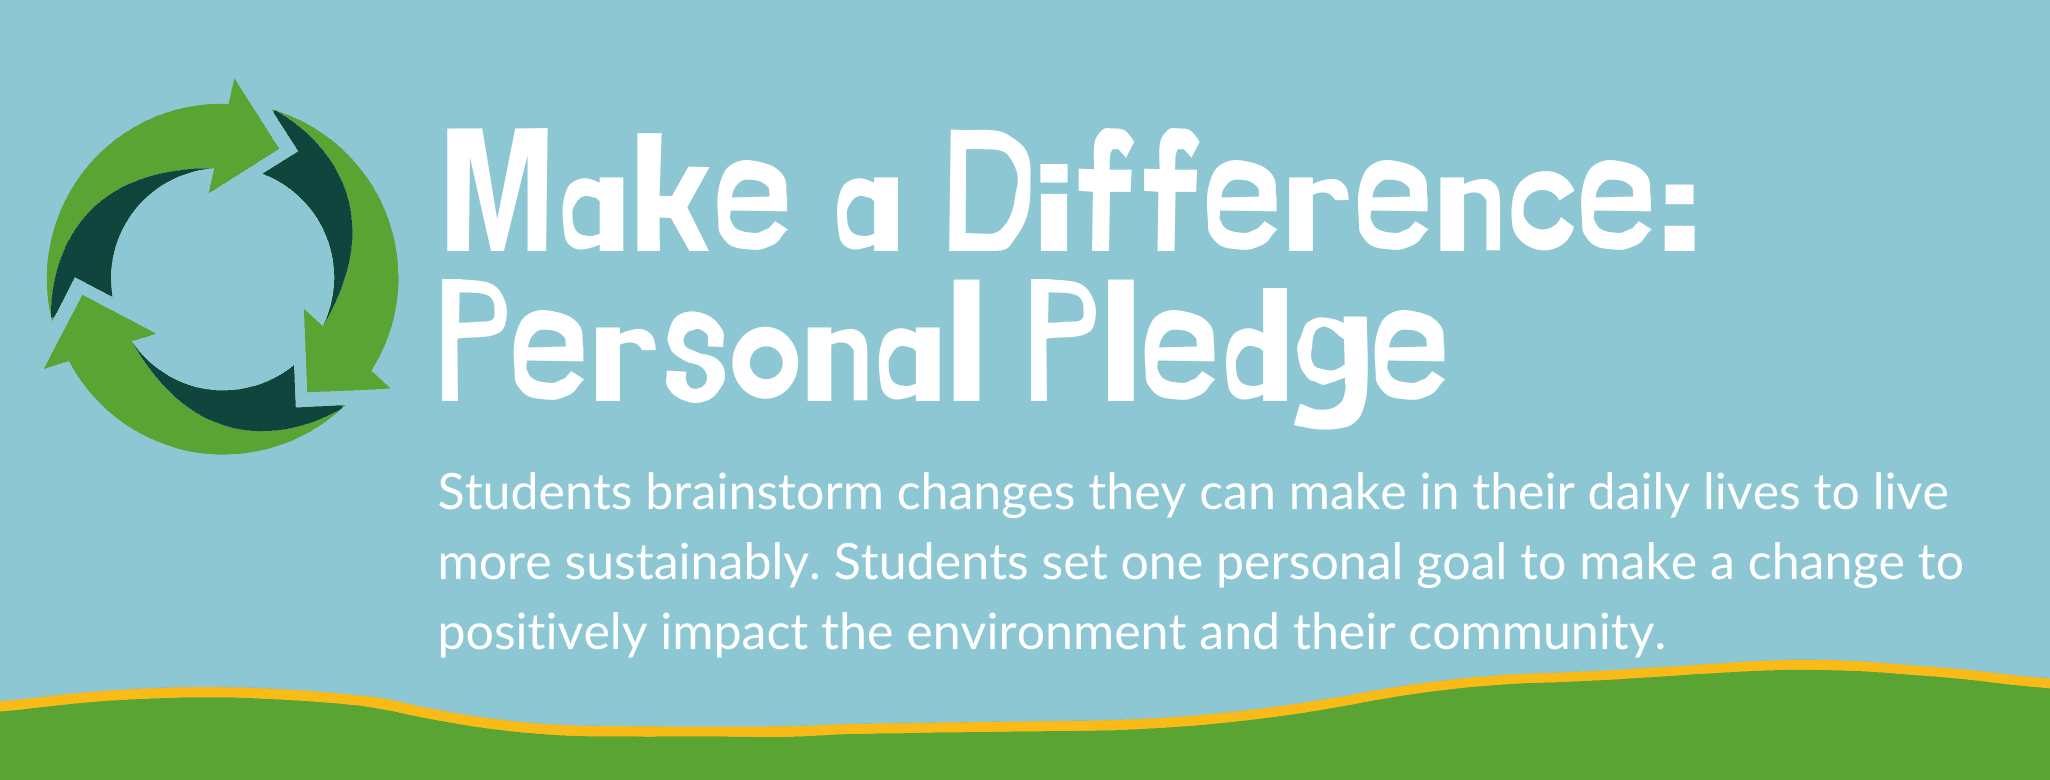 Make a Difference: Personal Pledge